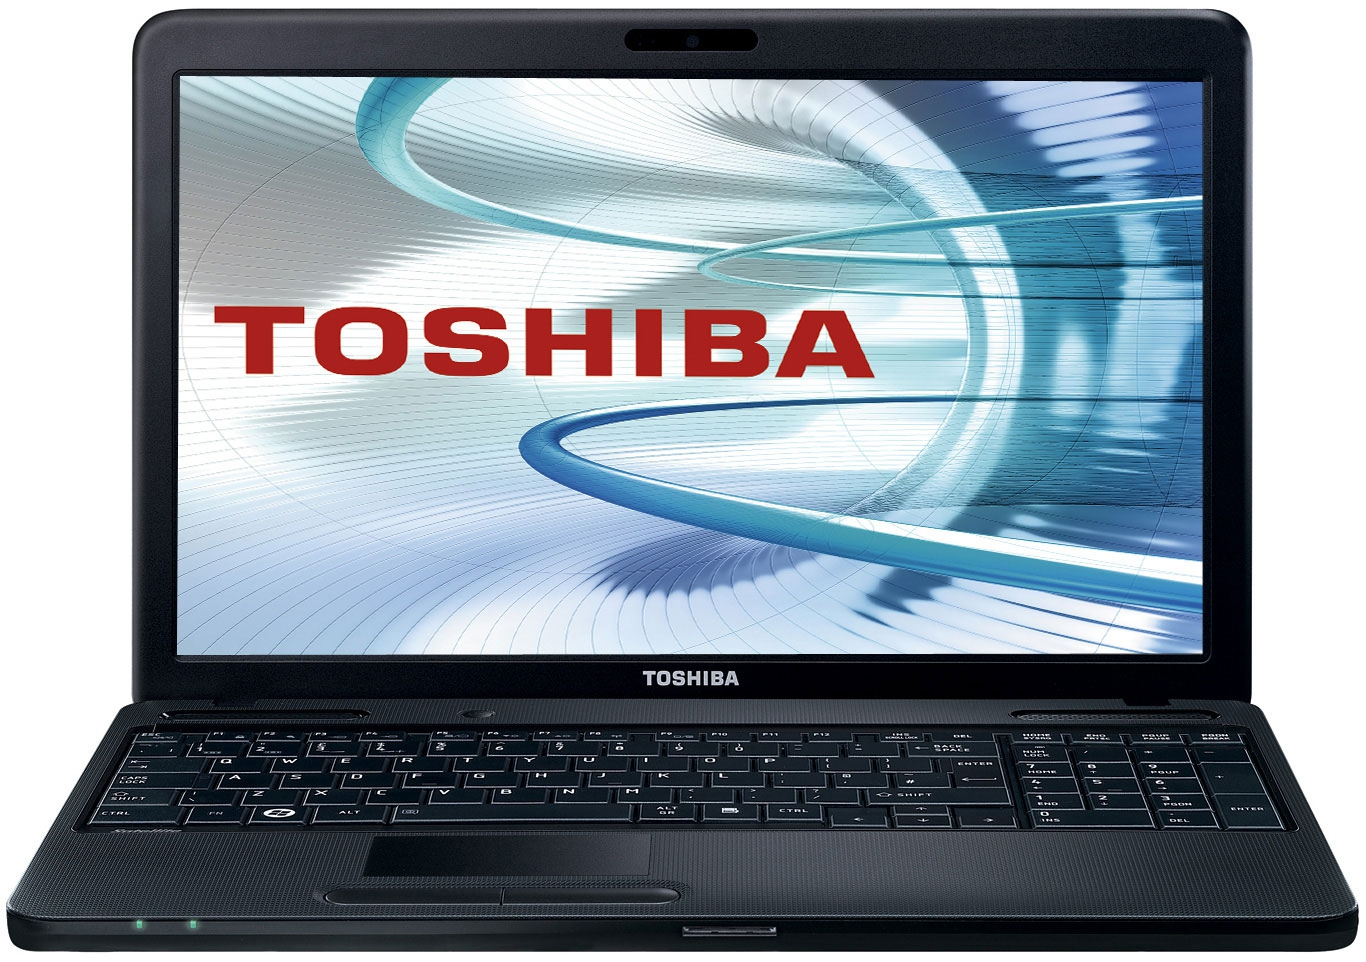 Toshiba bass enhanced sound system драйвер скачать